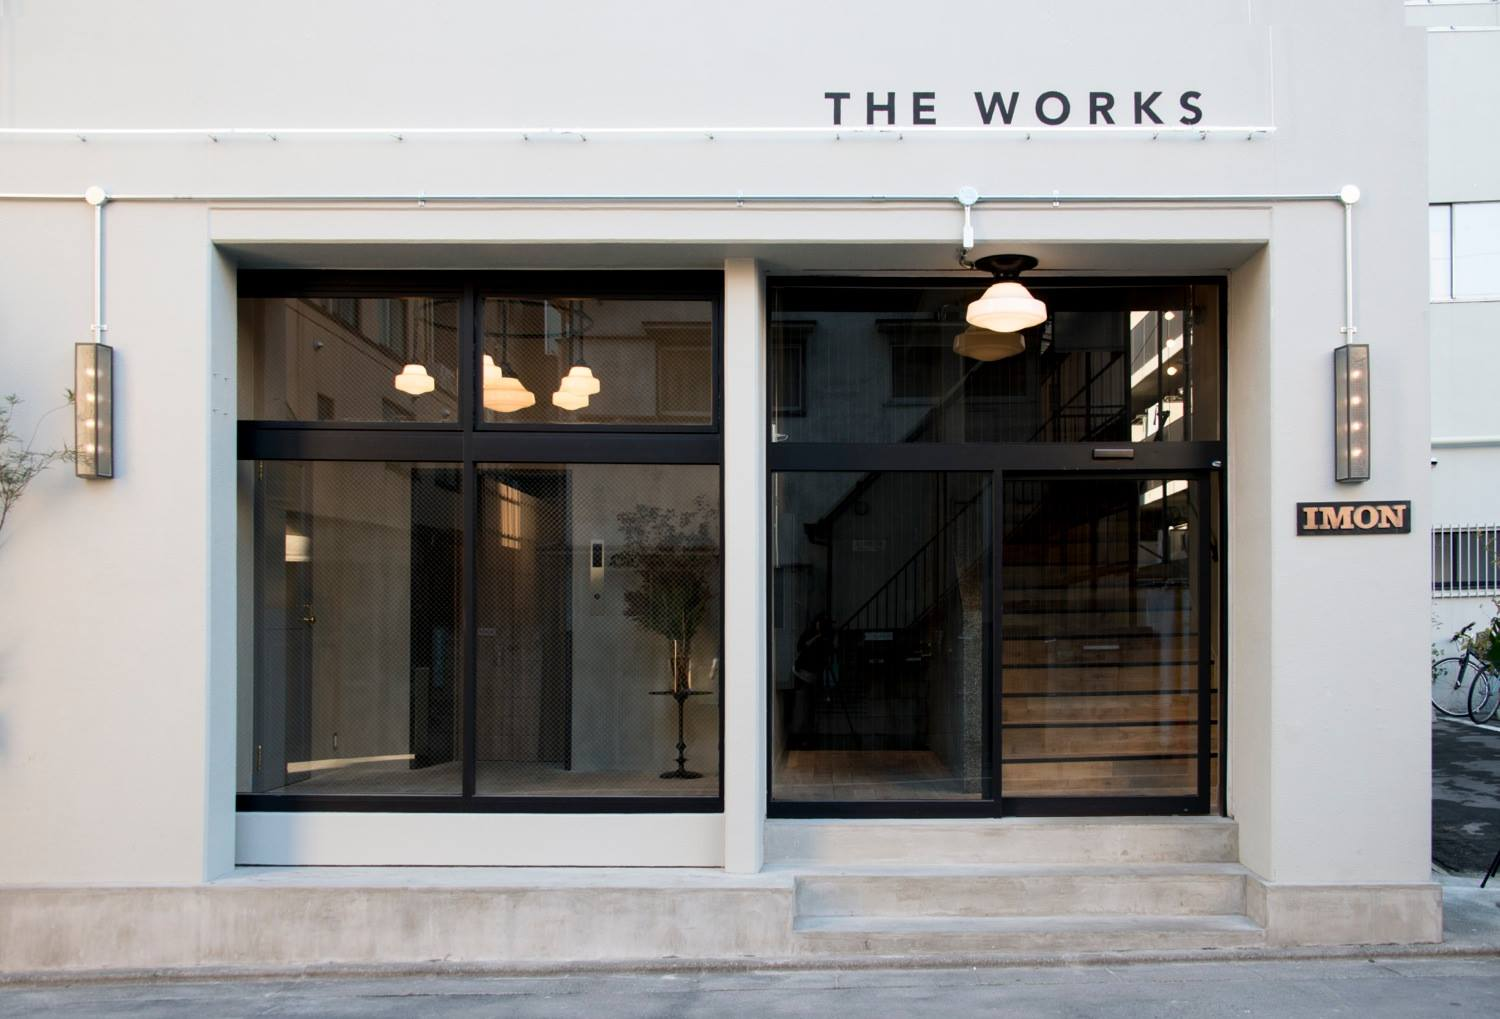 The Works Exterior